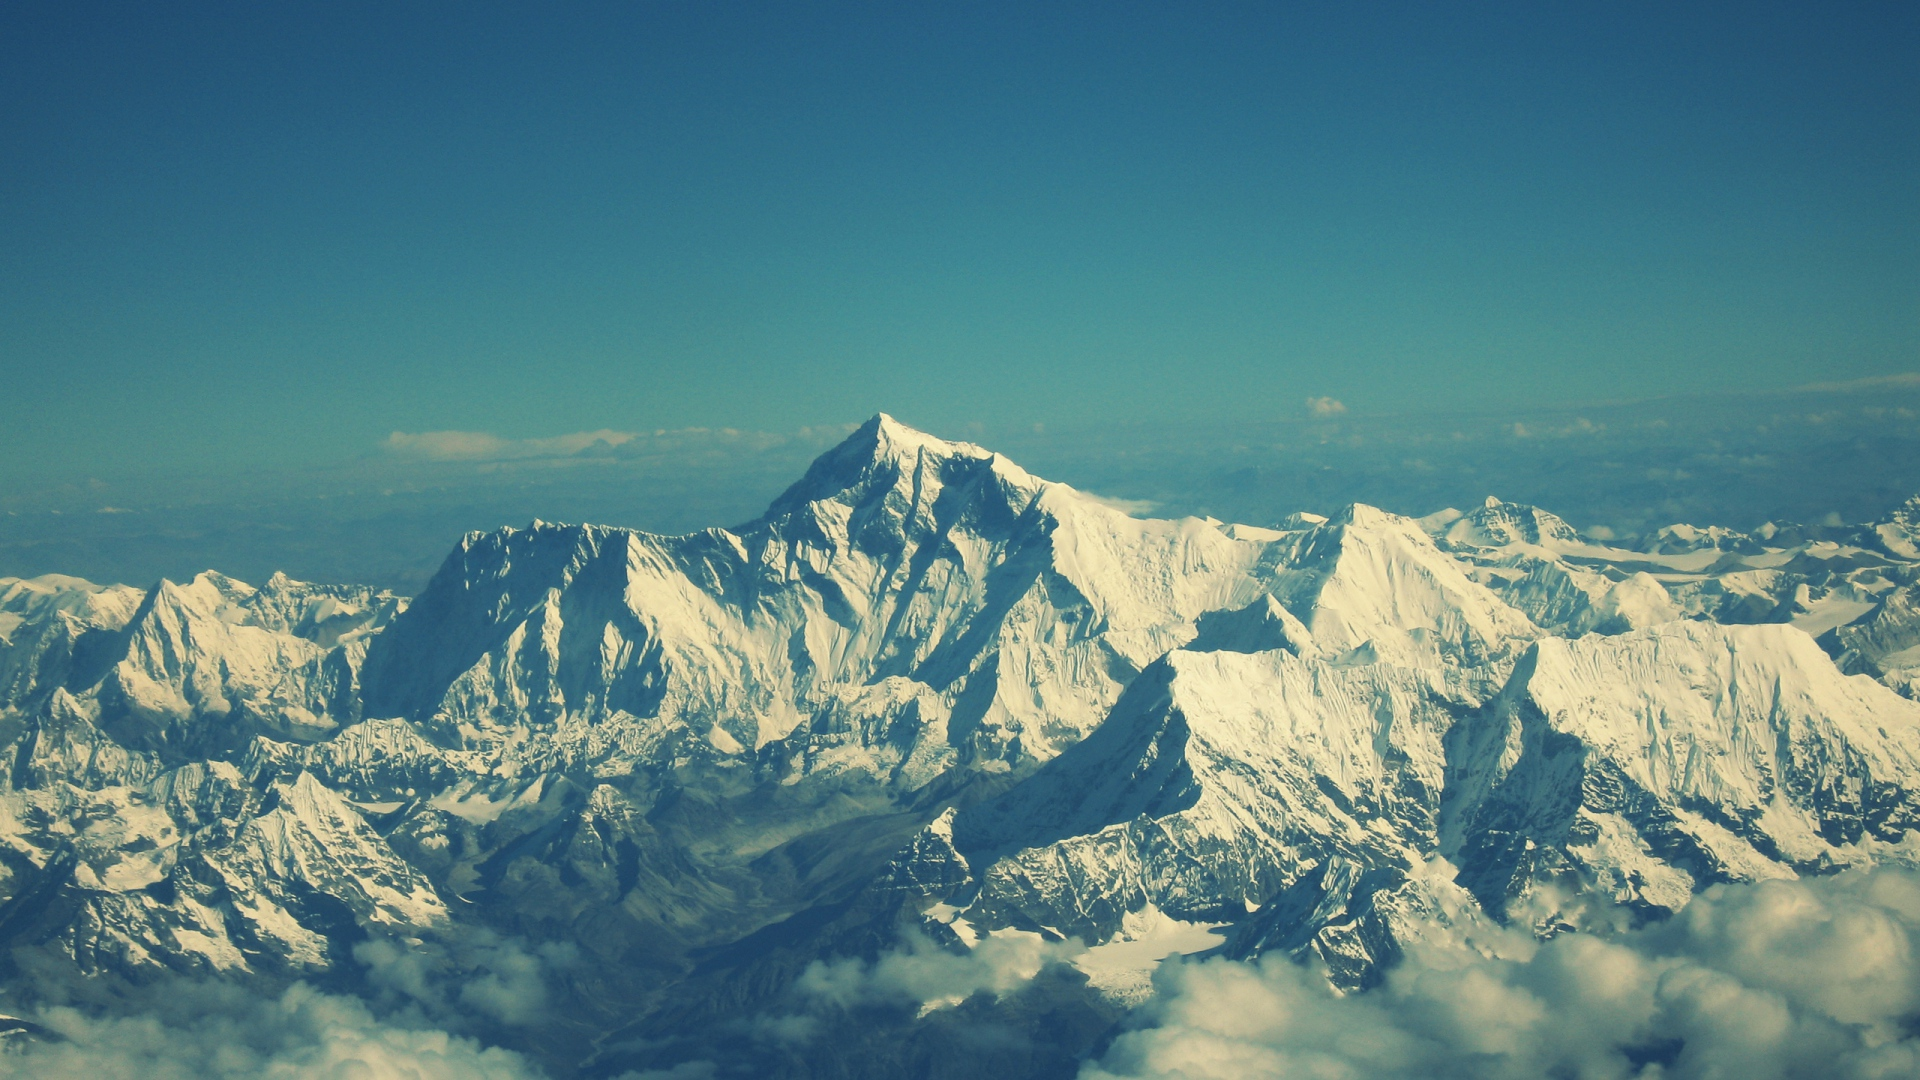 Download Wallpaper 1920x1080 Everest Mountain Sky Tops Full Hd